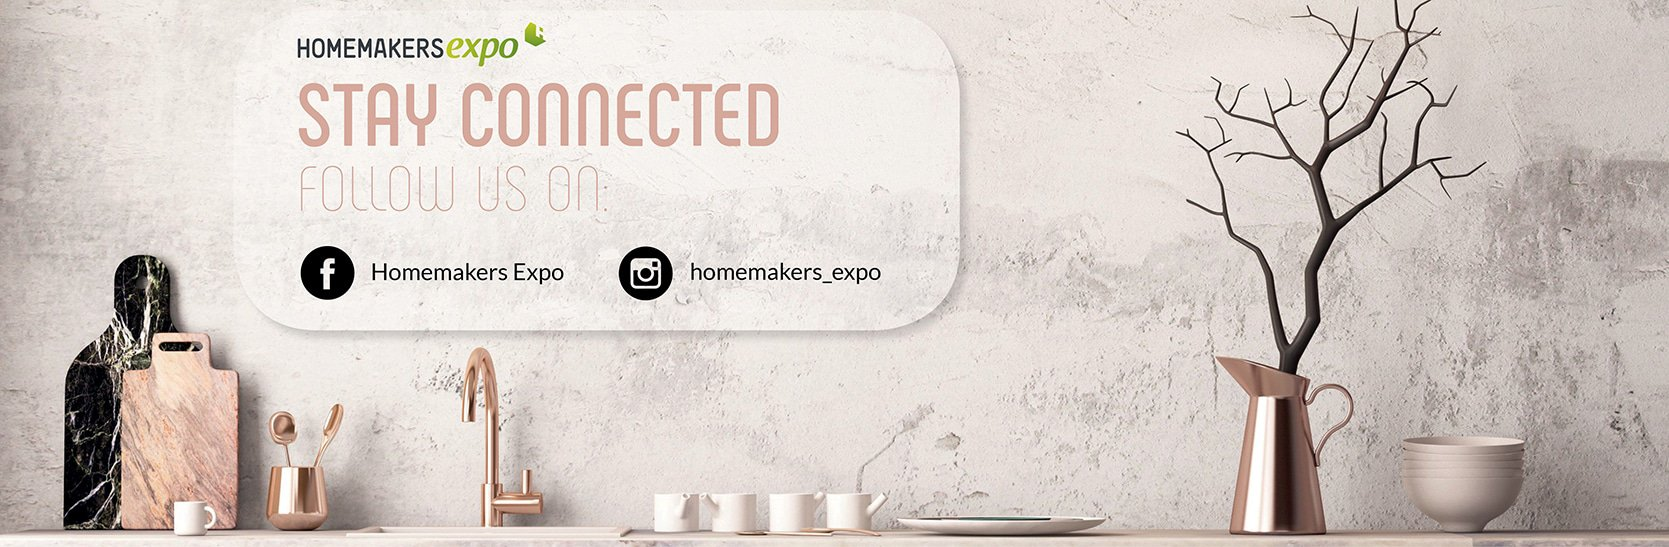 HOMEMAKERS Expo 2019 - Social Media